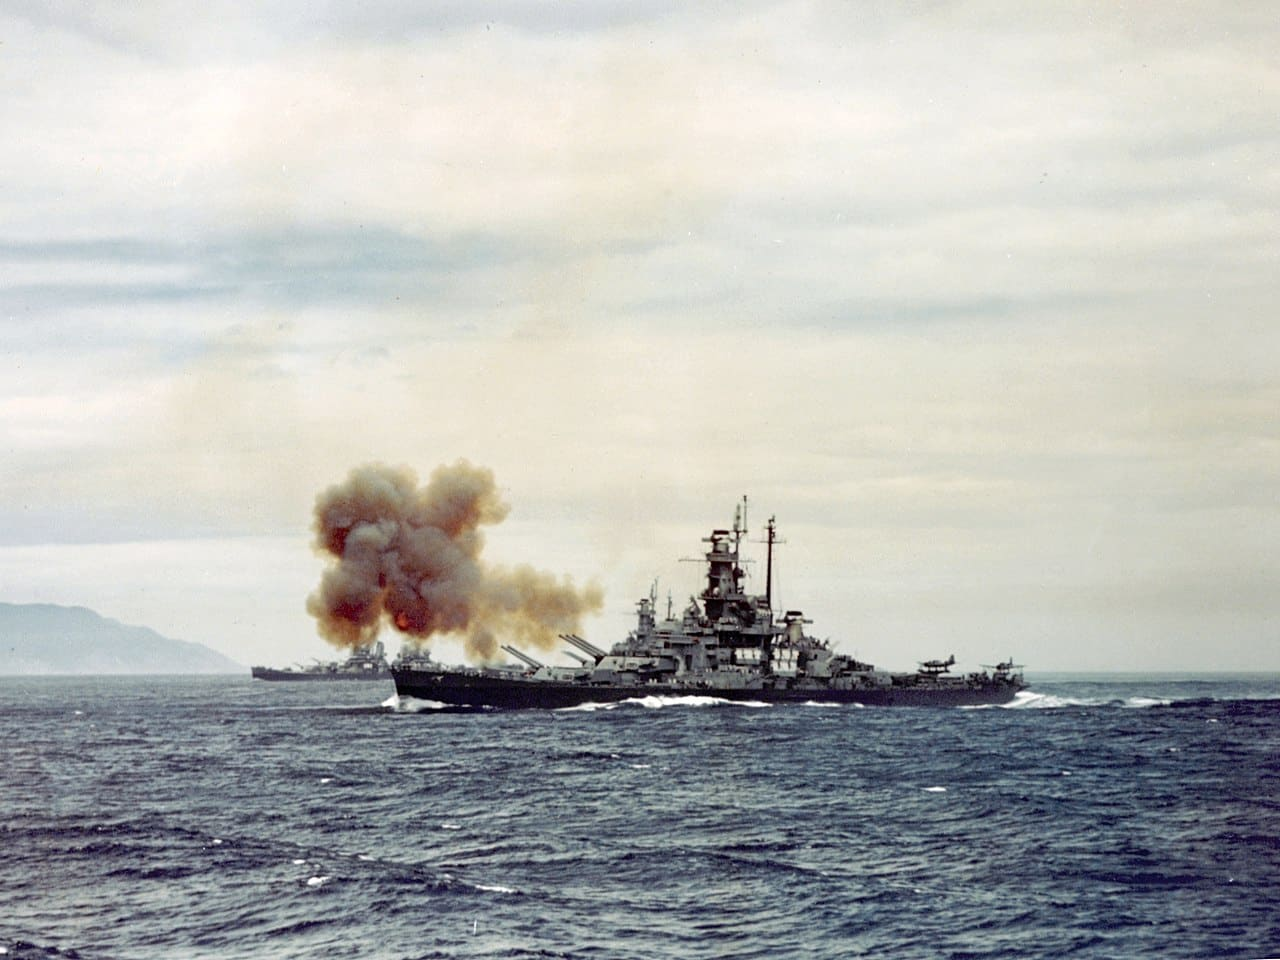 The Potsdam Conference - July 23rd 1945 - Throughout the Potsdam Conference Anglo-American ships bombarded the Japanese mainland with impunity